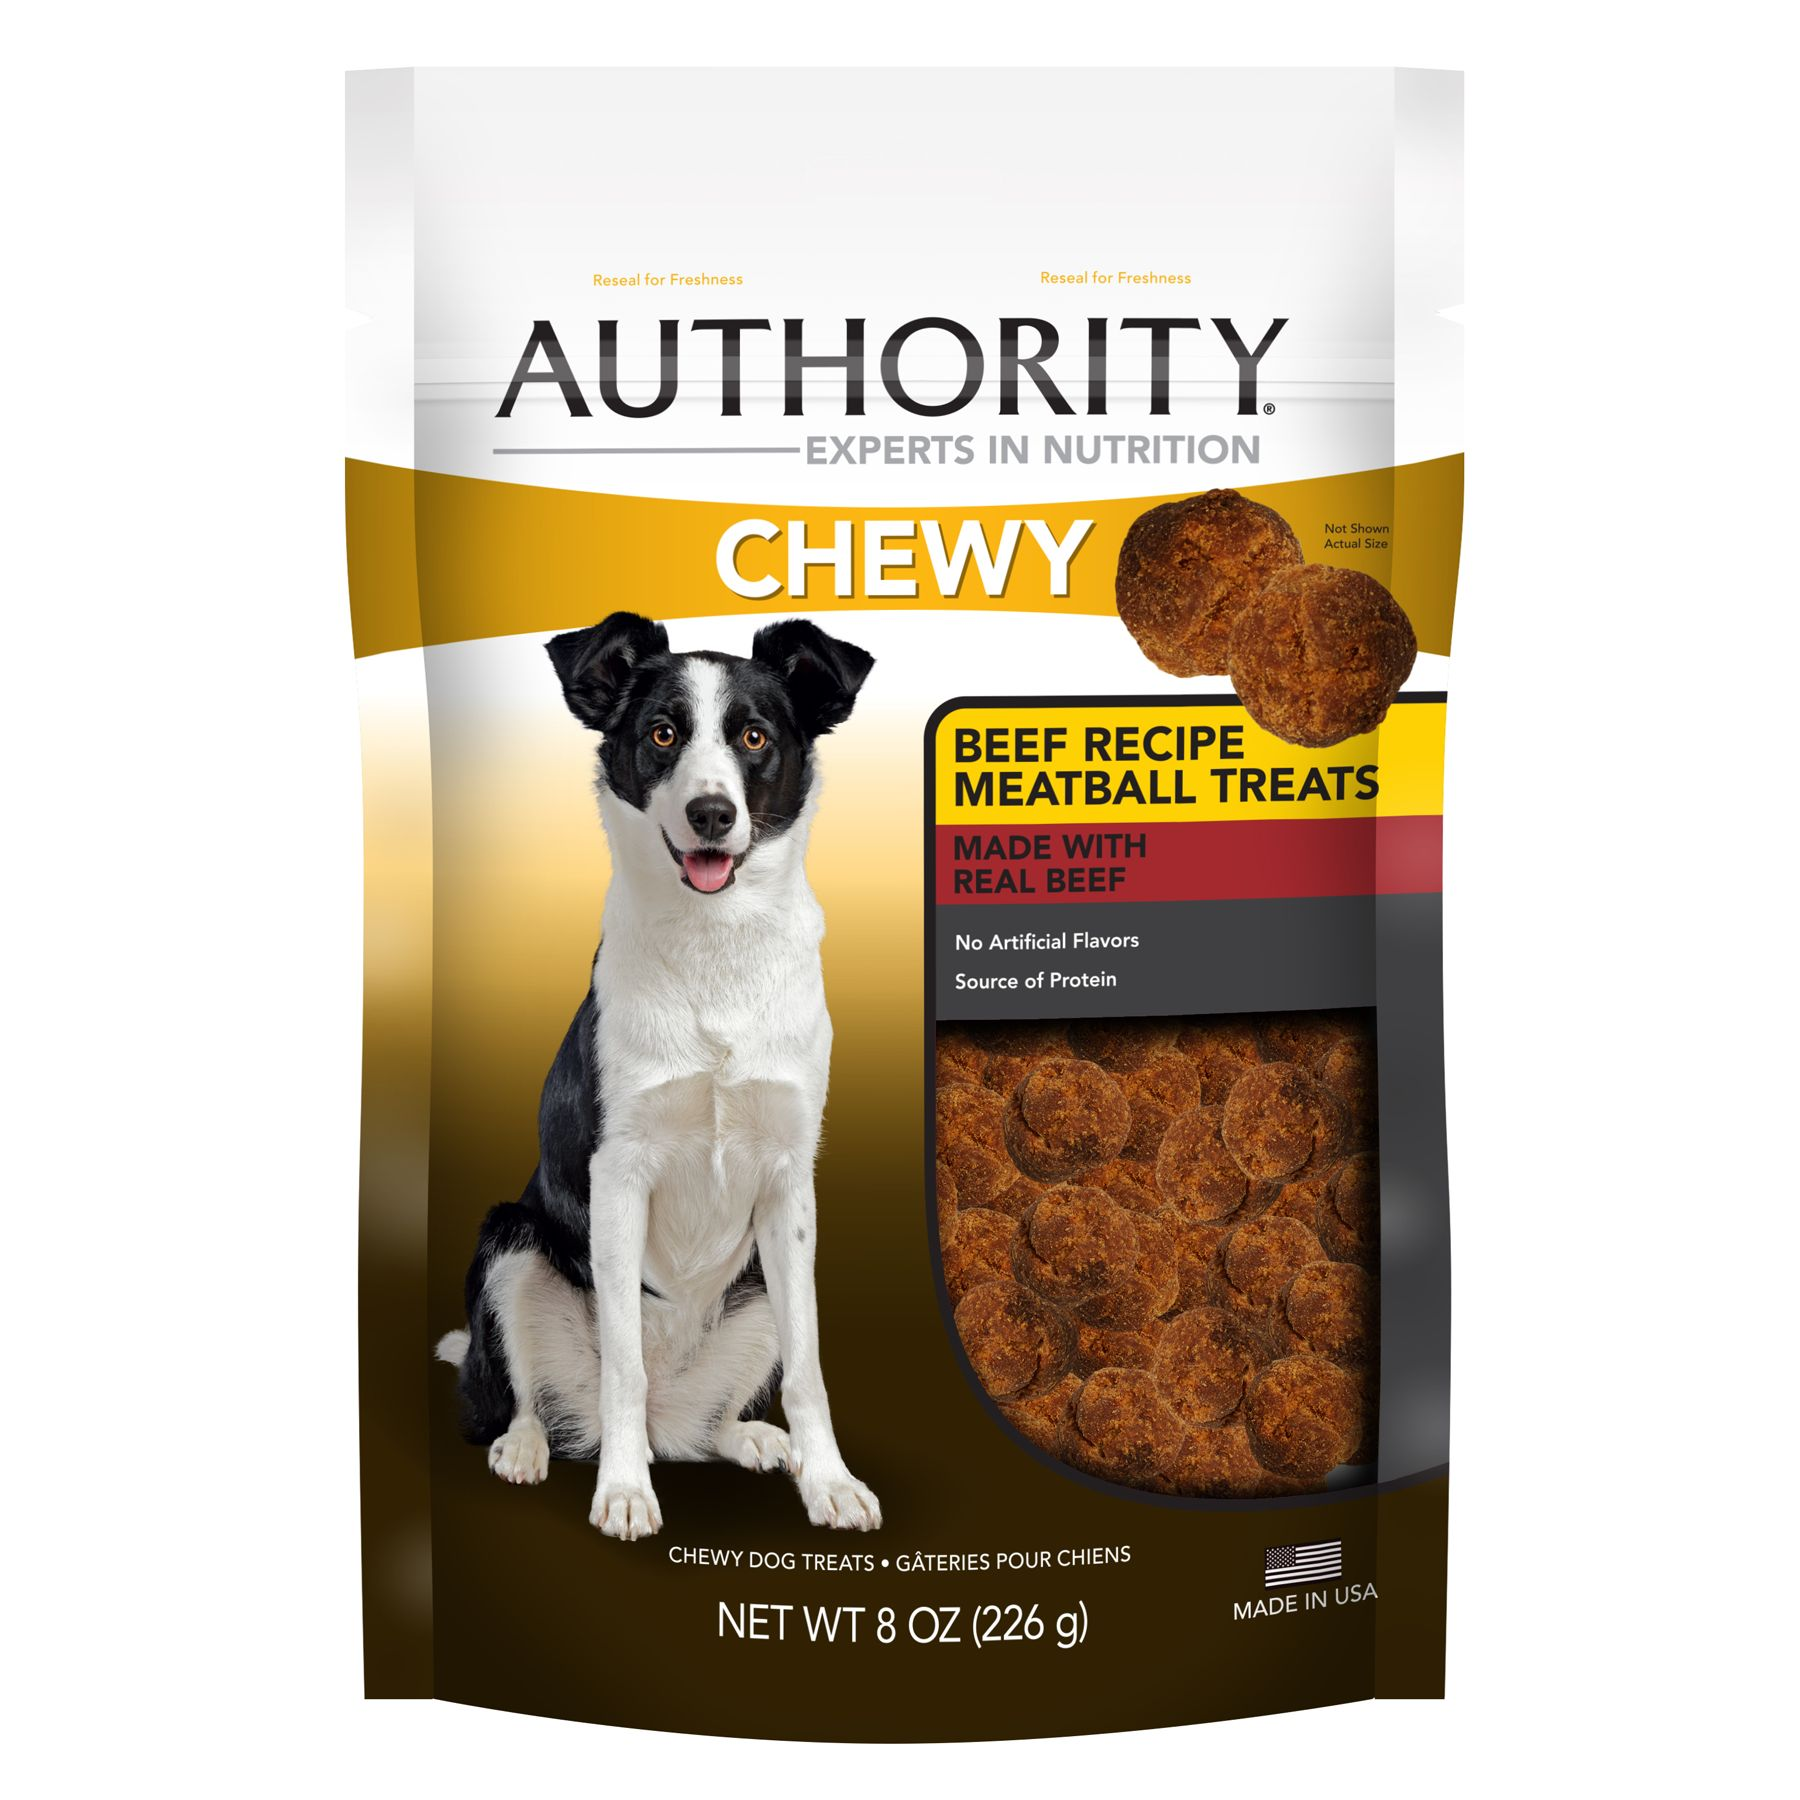 Authority Chewy Dog Treat Beef Meatball Size 8 Oz Adult